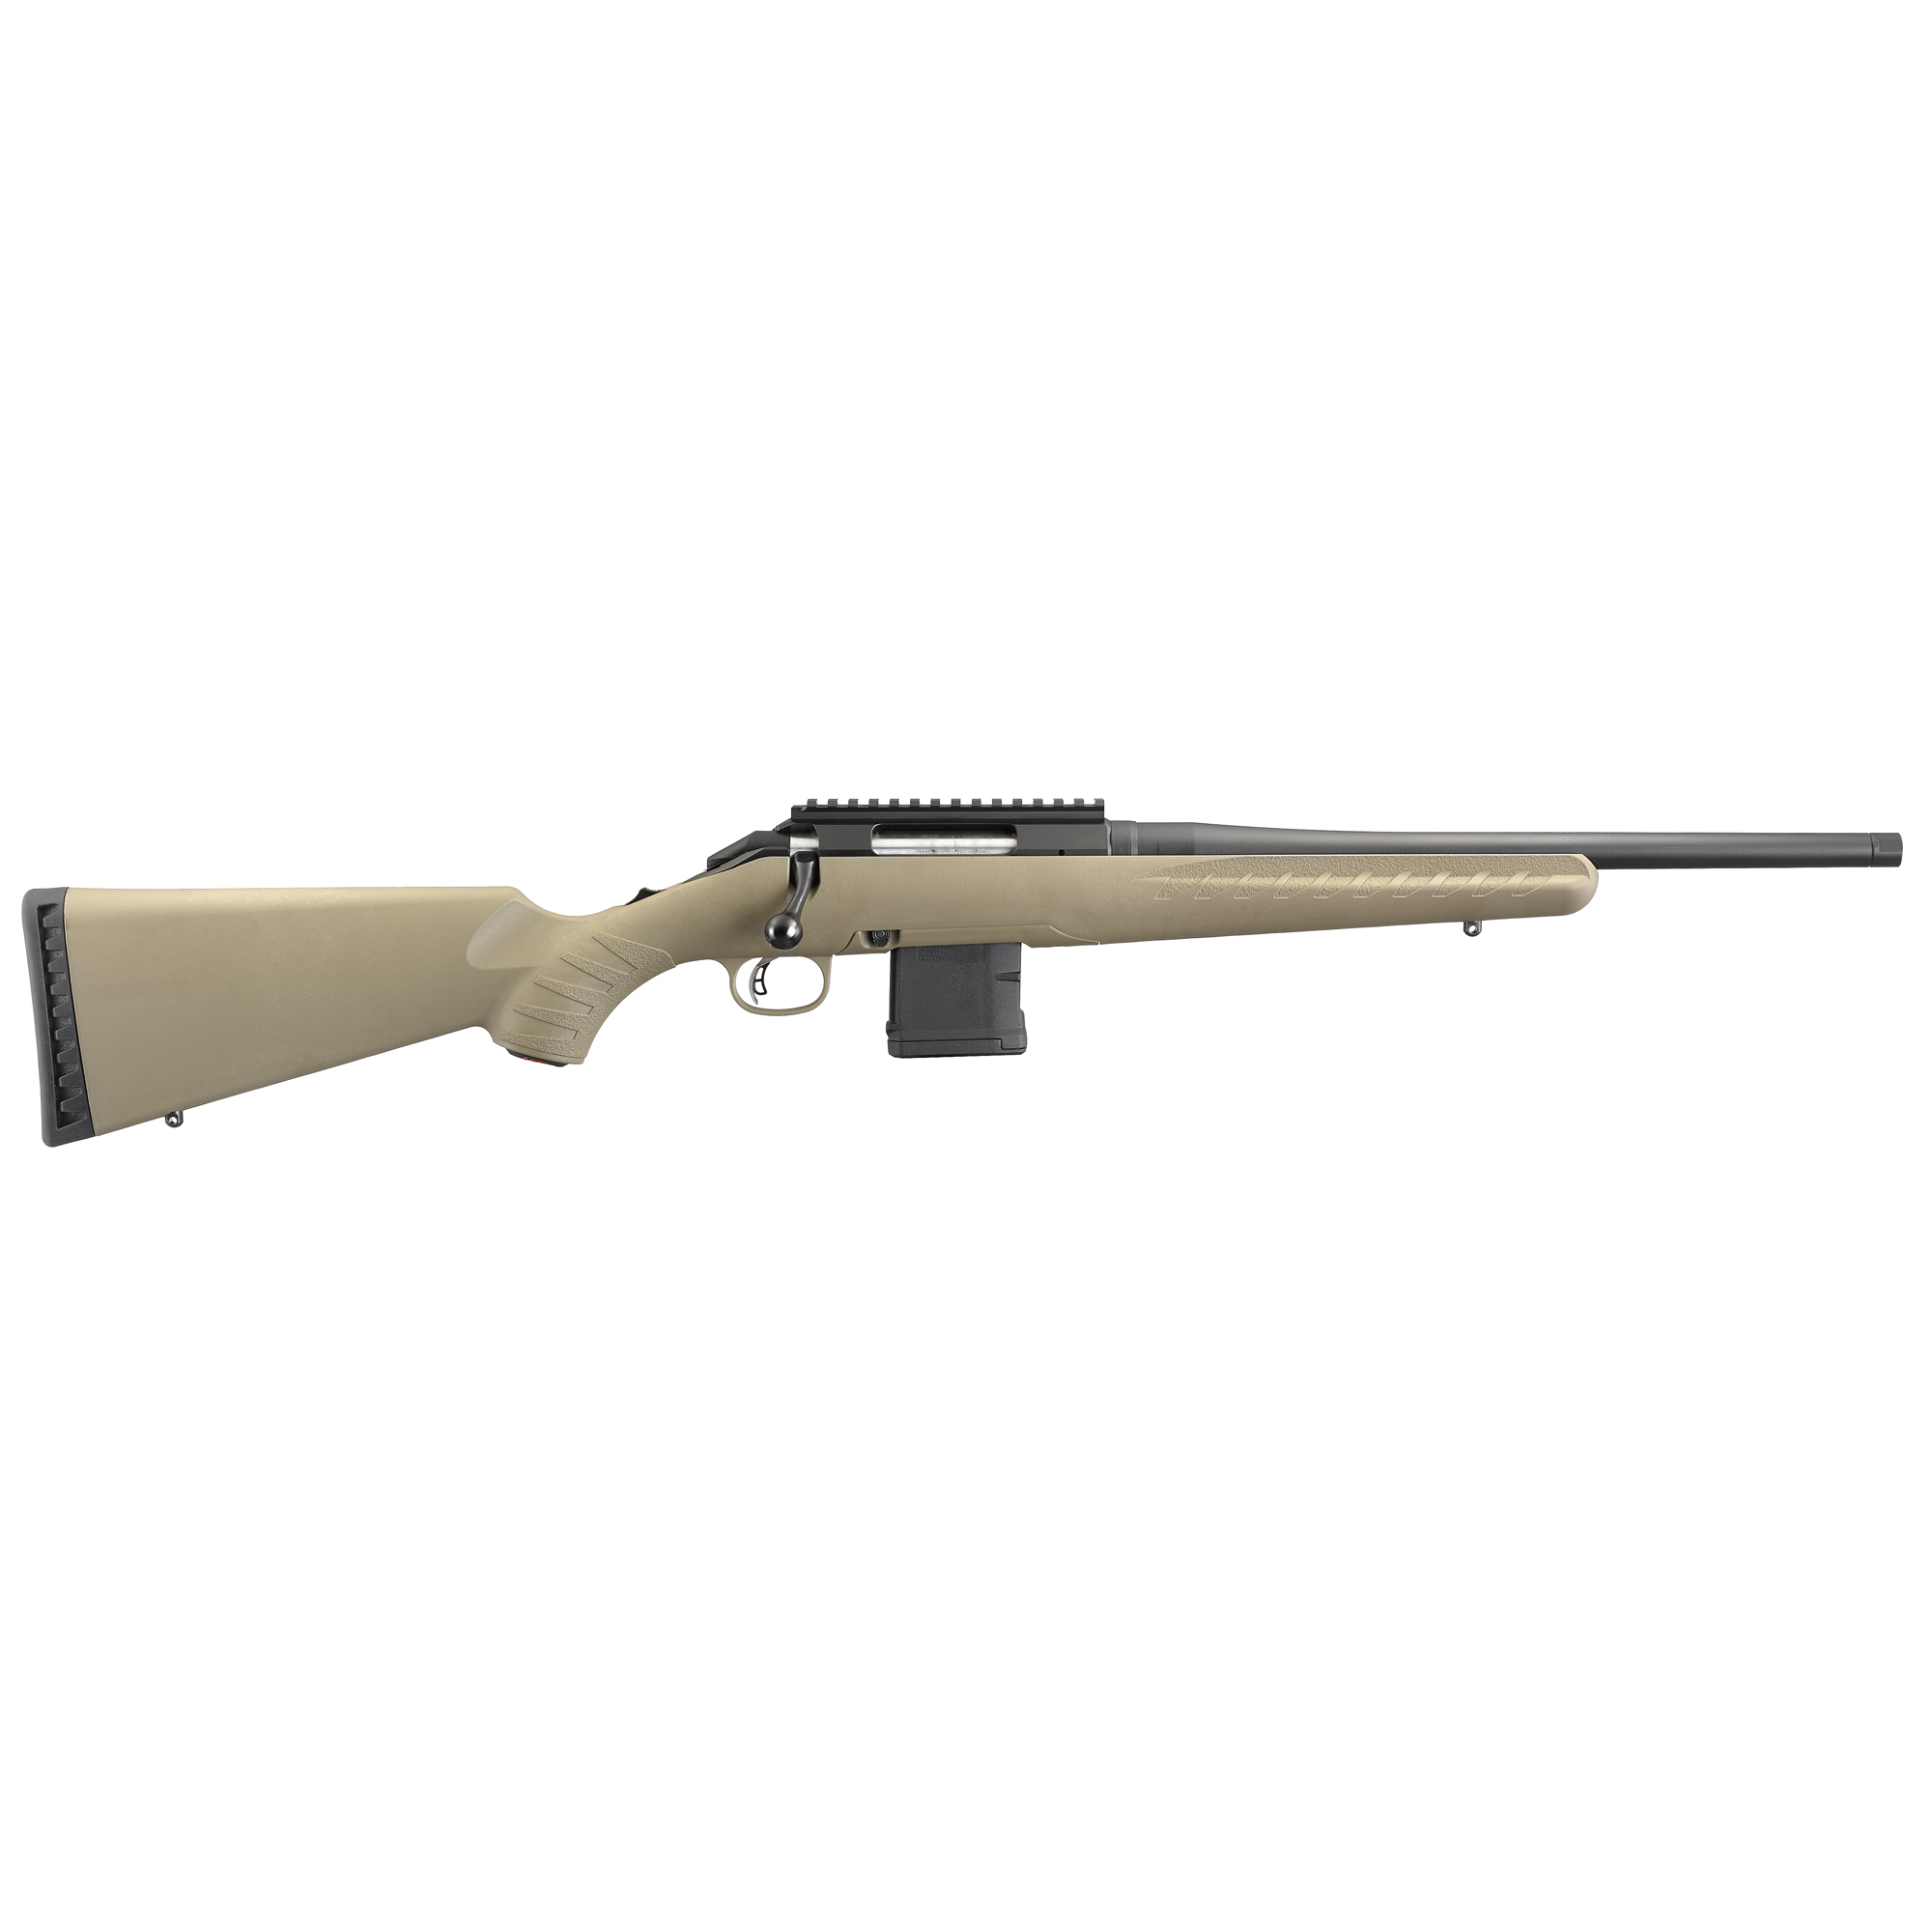 """Ruger American rifles feature a one-piece"""" three-lug bolt with 70 degree throw that provides ample scope clearance and utilizes a full diameter bolt body and dual cocking cams for smooth"""" easy cycling from the shoulder. The American rifle offers minute-of-angle accuracy that can make every hunt a success."""